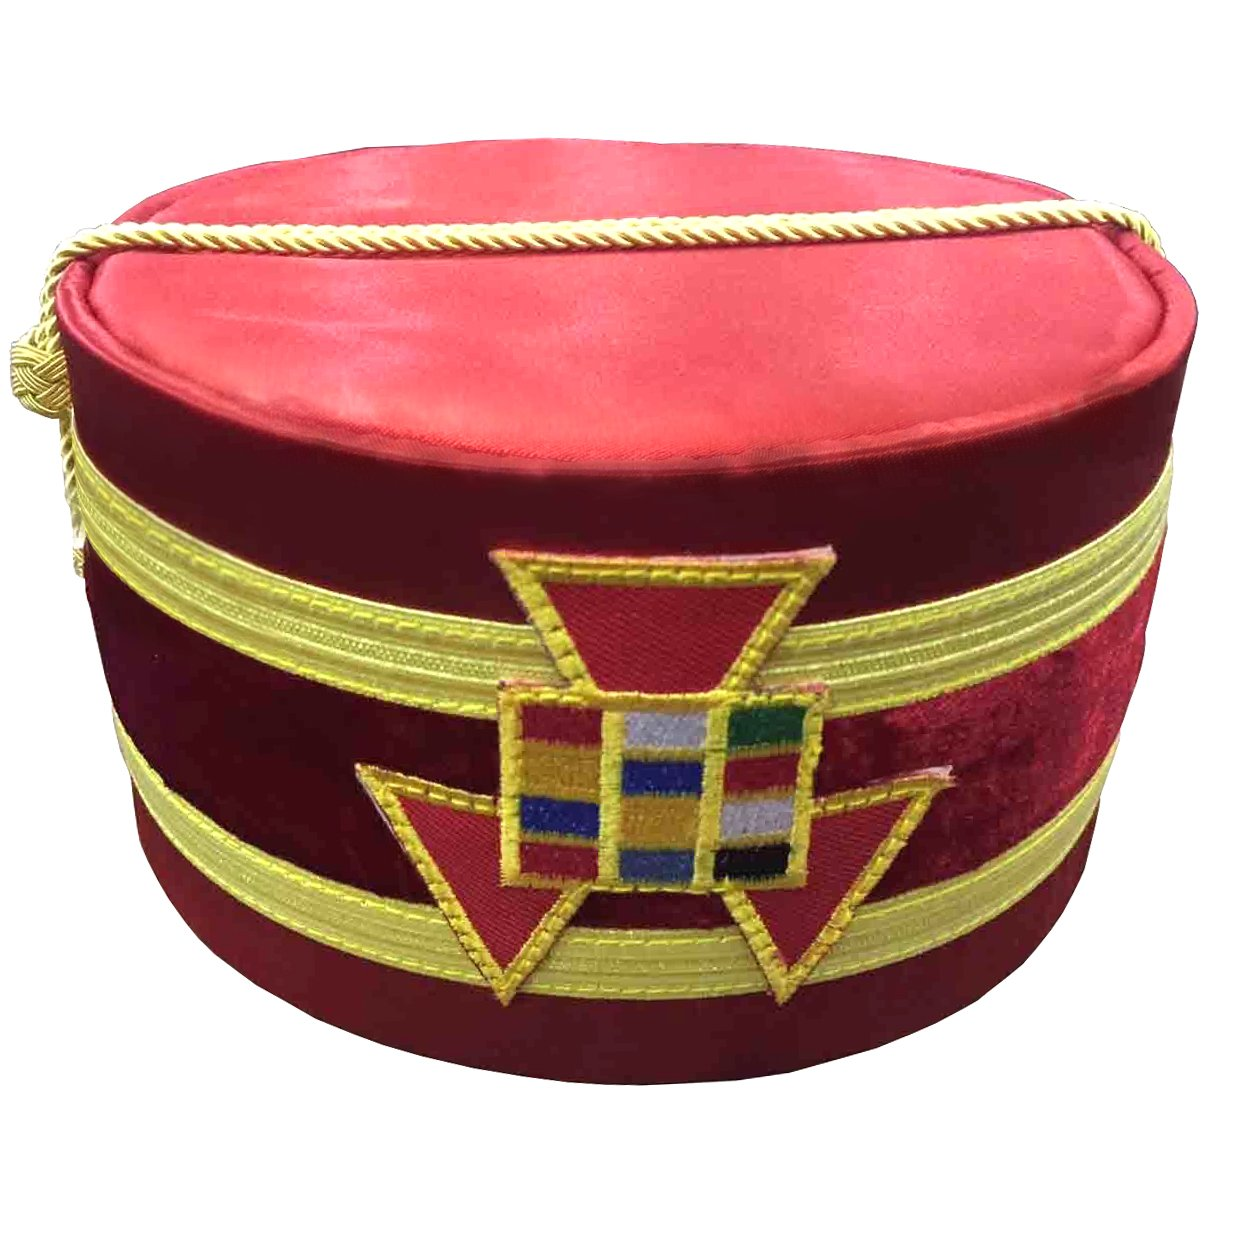 Royal Arch Past High Priest PHP Emblem Cap Red - Bricks Masons